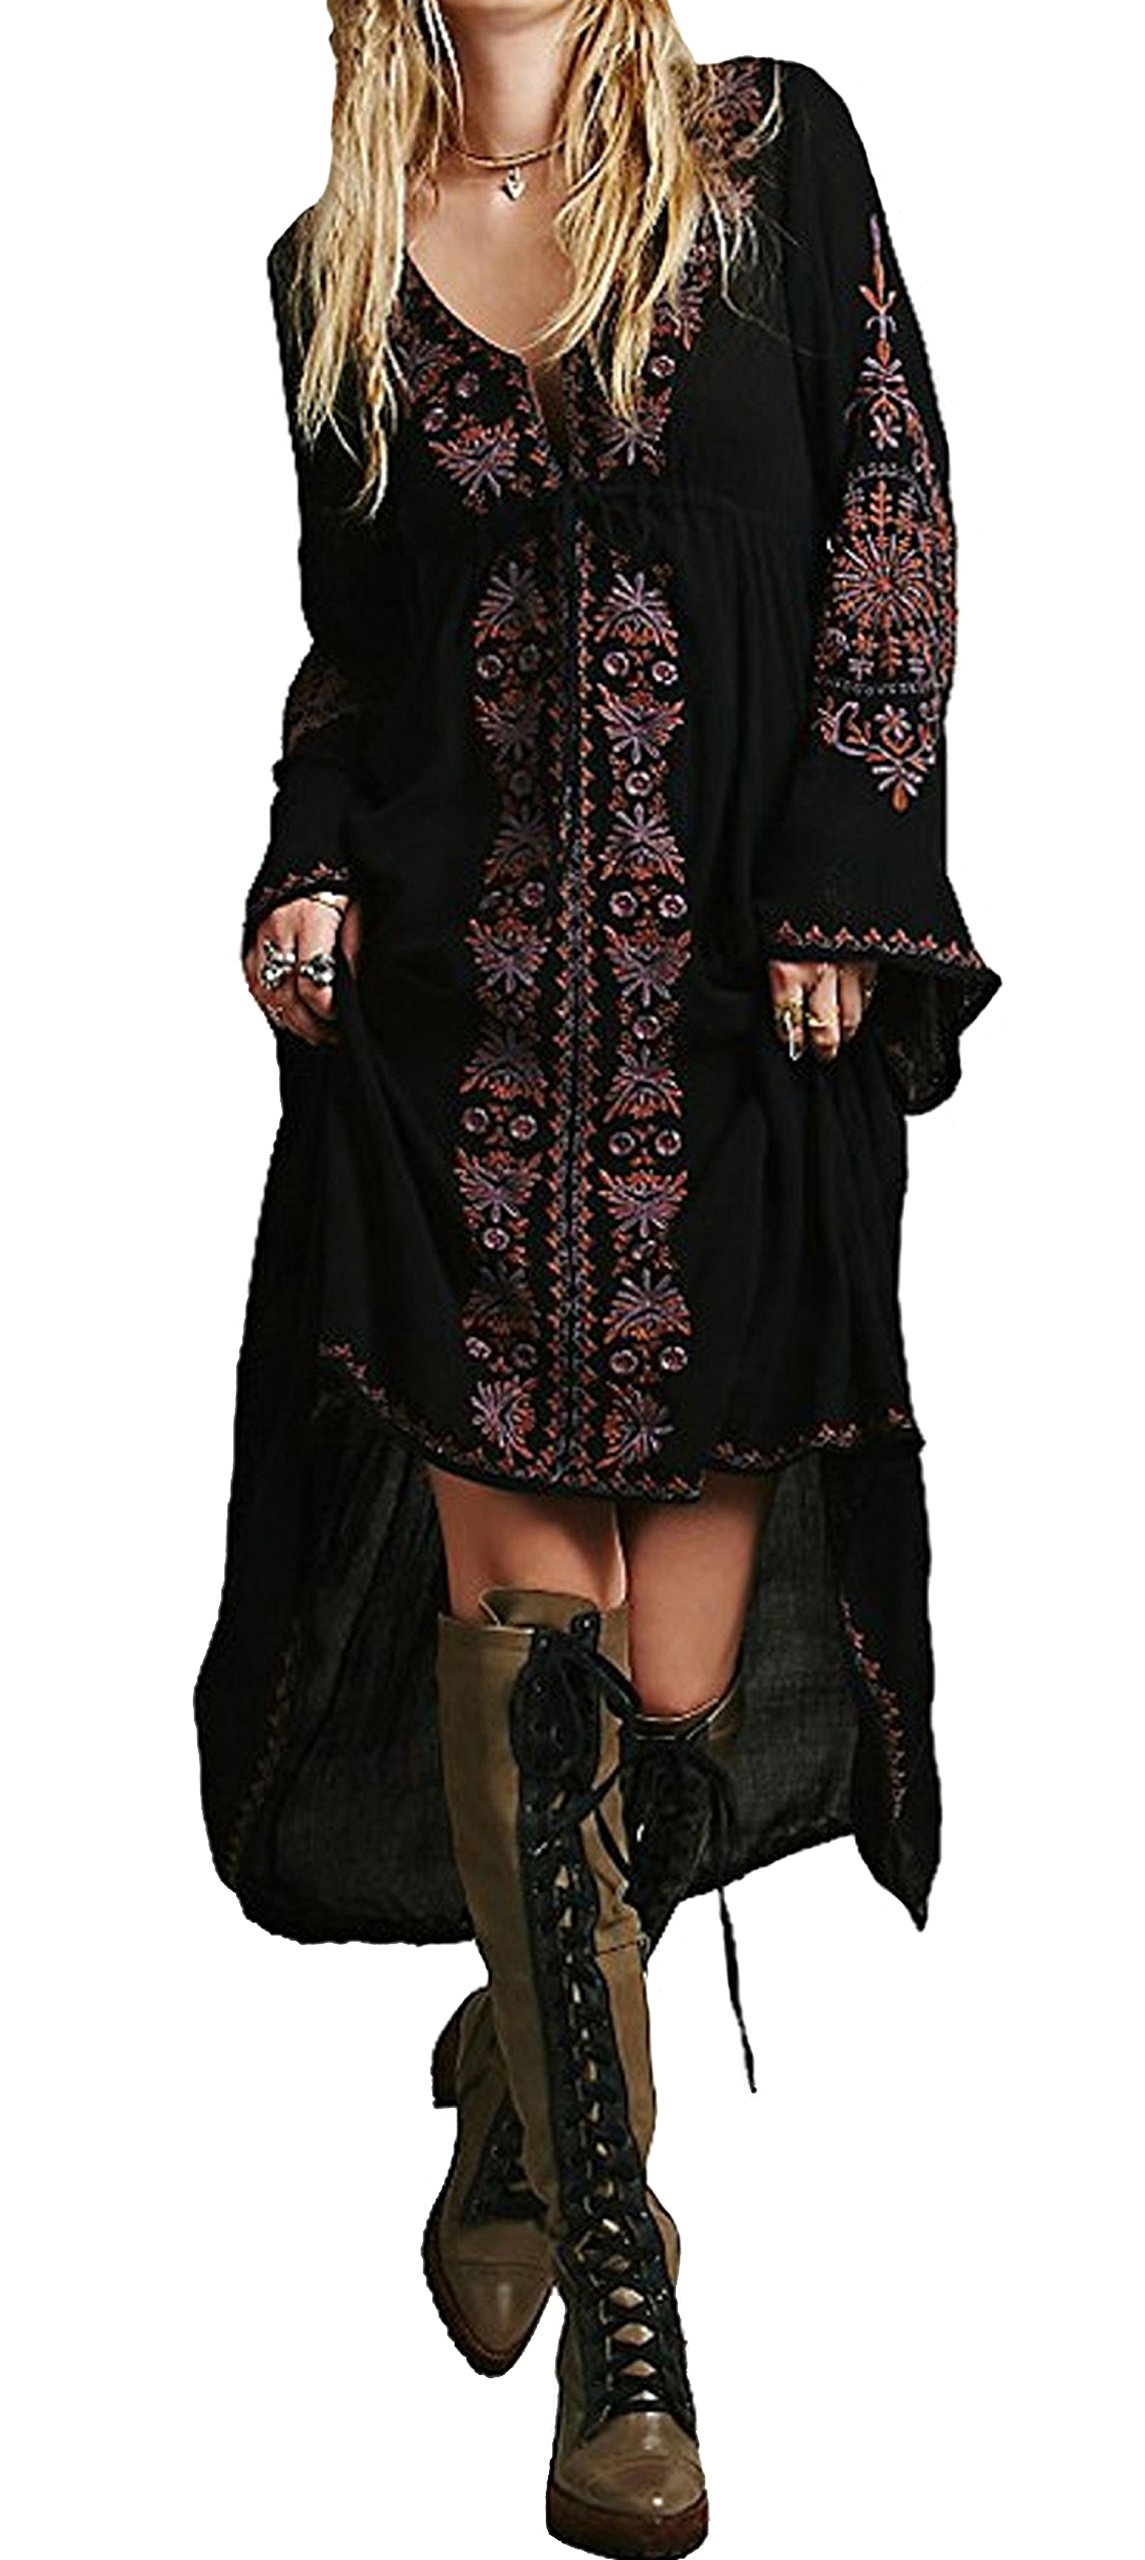 R.Vivimos Women Cotton Embroidered High Low Long Dresses Large Black